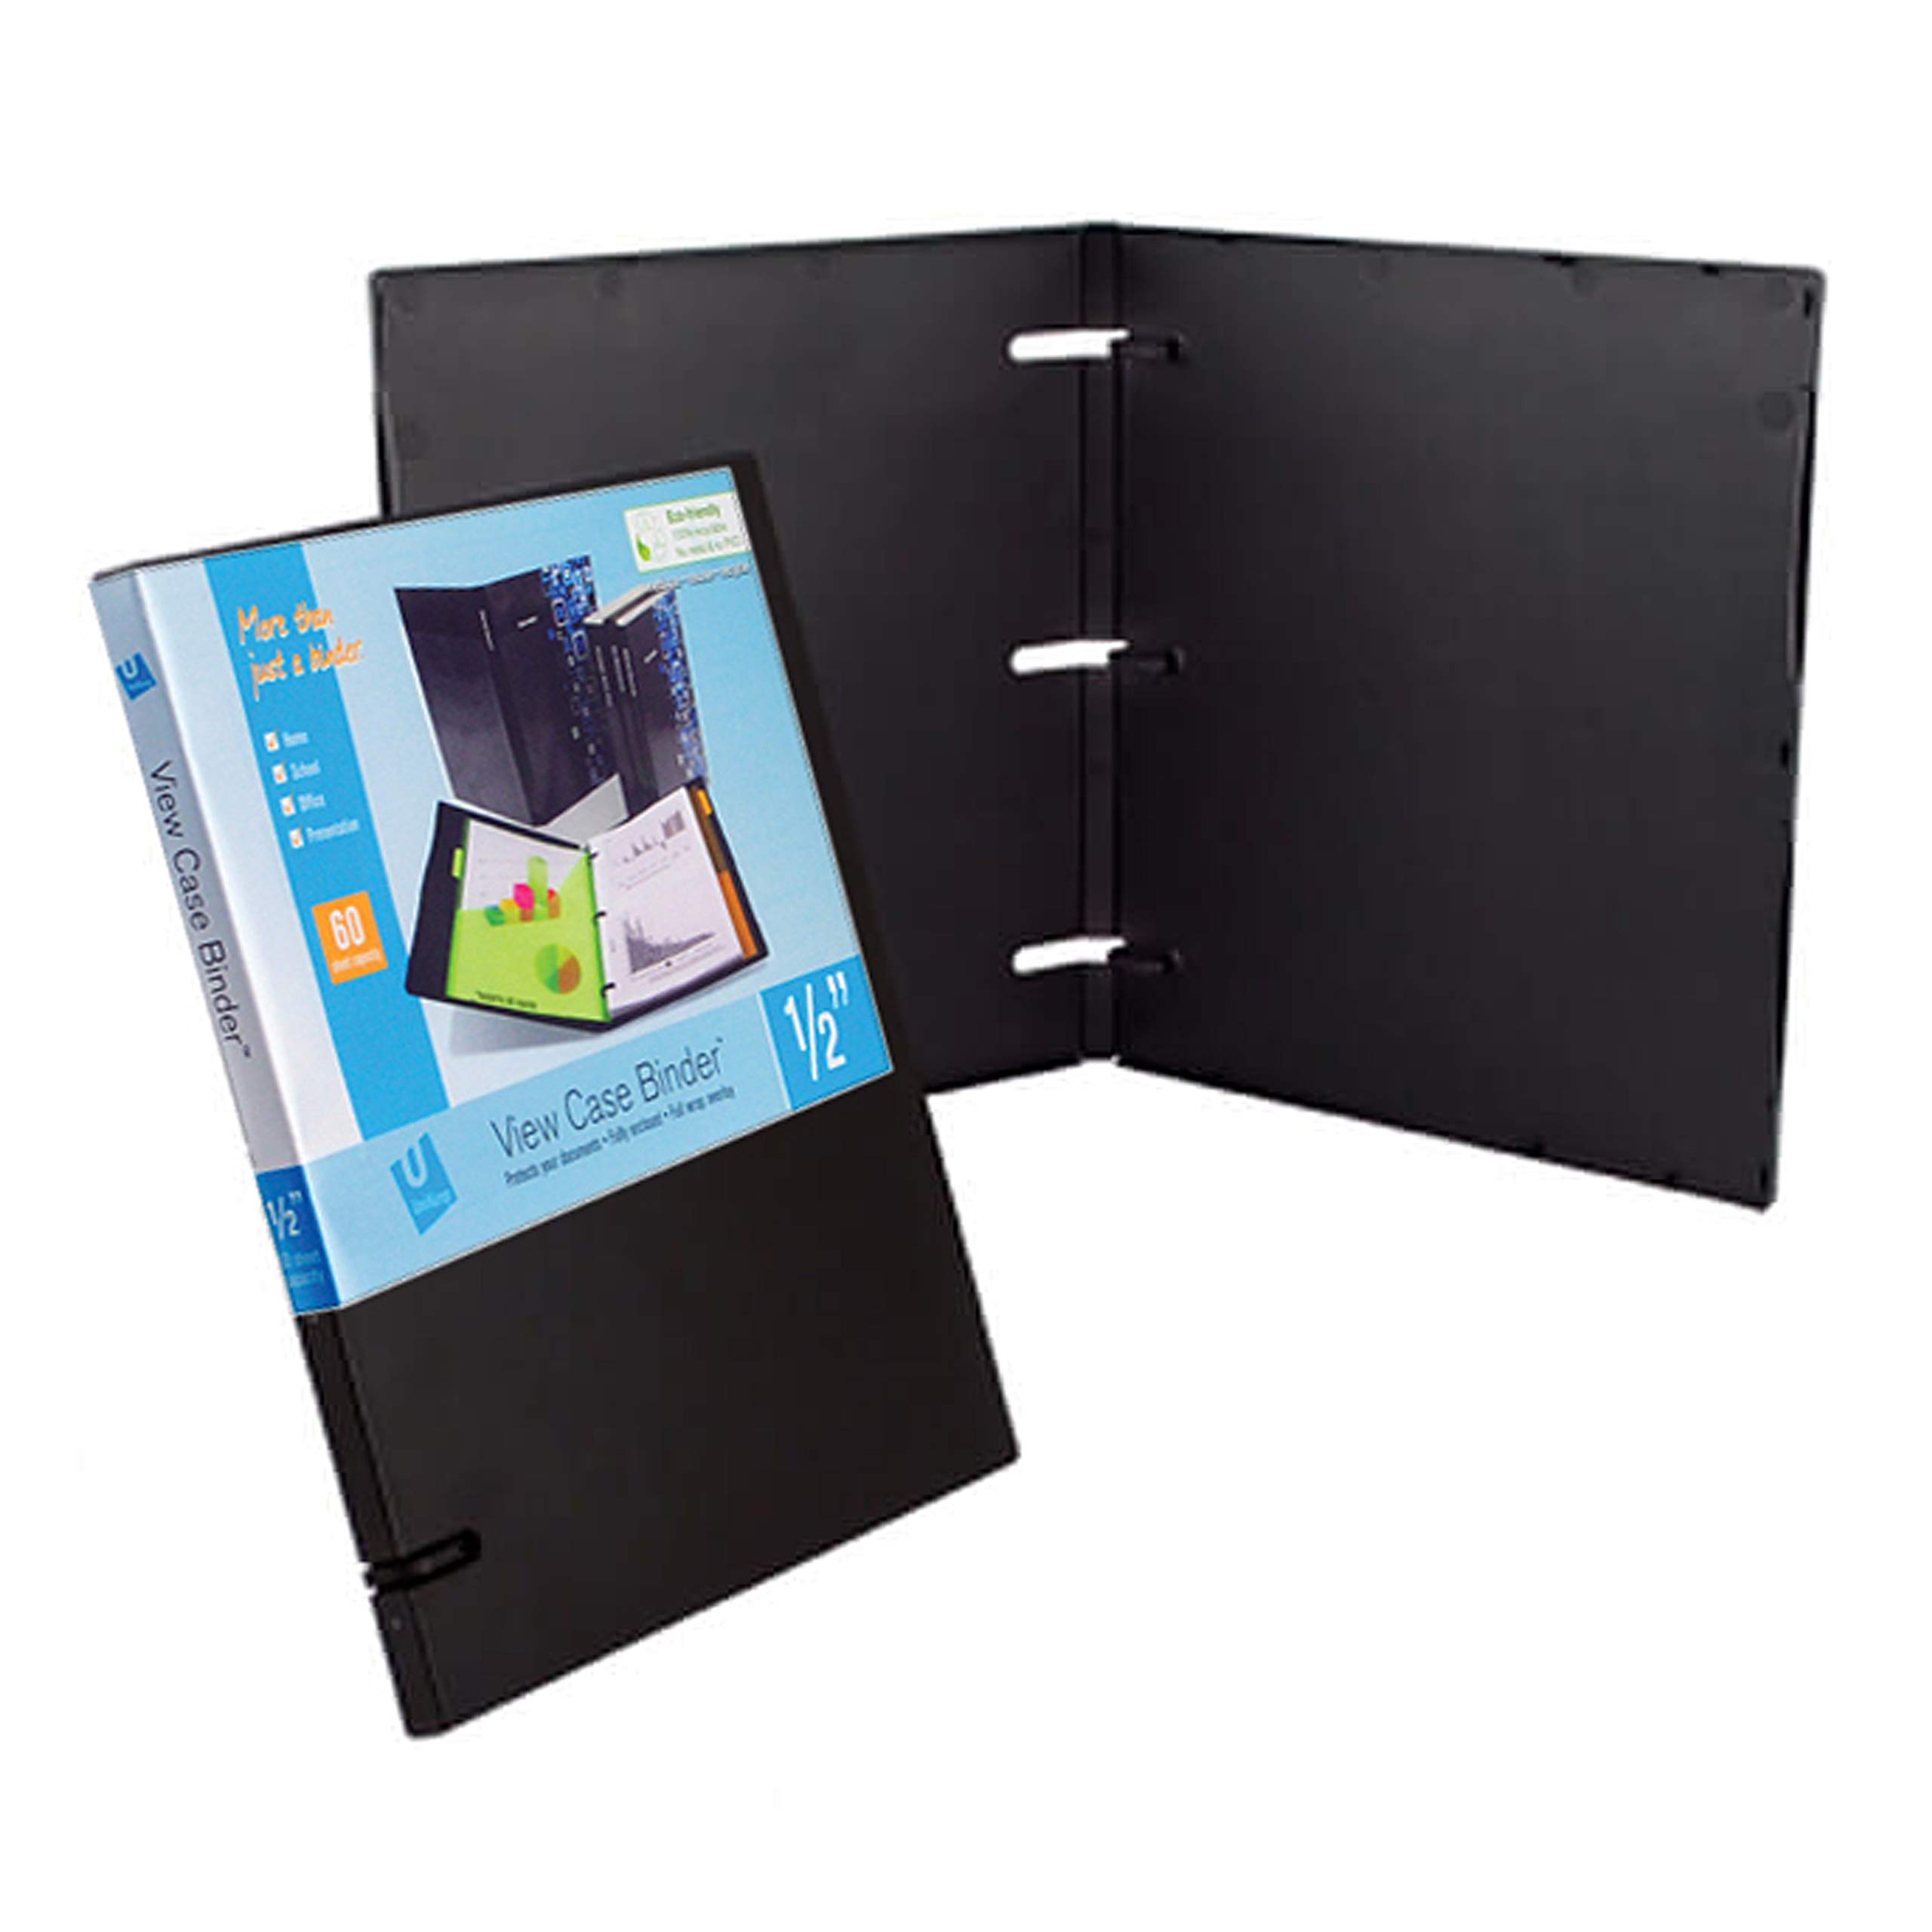 UniKeep 3 Ring Binder - Black - Case View Binder - 0.50 Inch Spine - With Clear Outer Overlay - Pack of 3 Binders